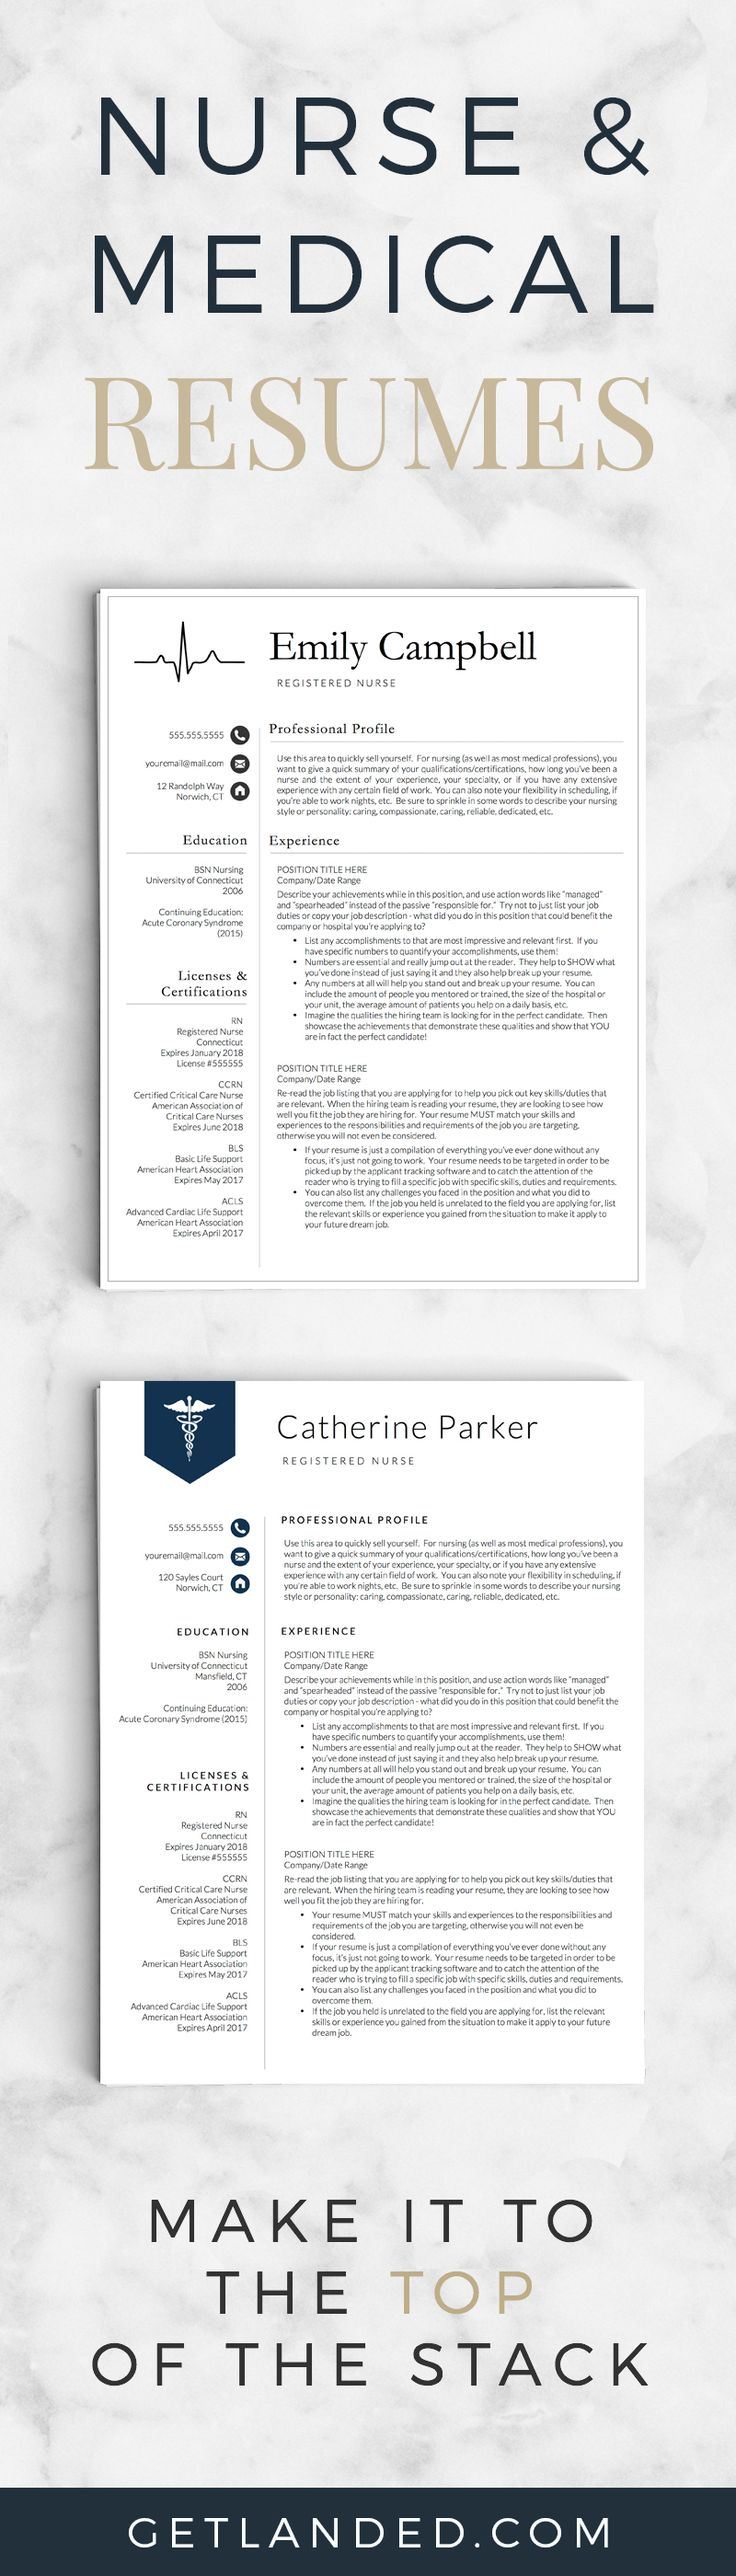 Best 25 Registered Nurse Resume Ideas On Pinterest Nursing